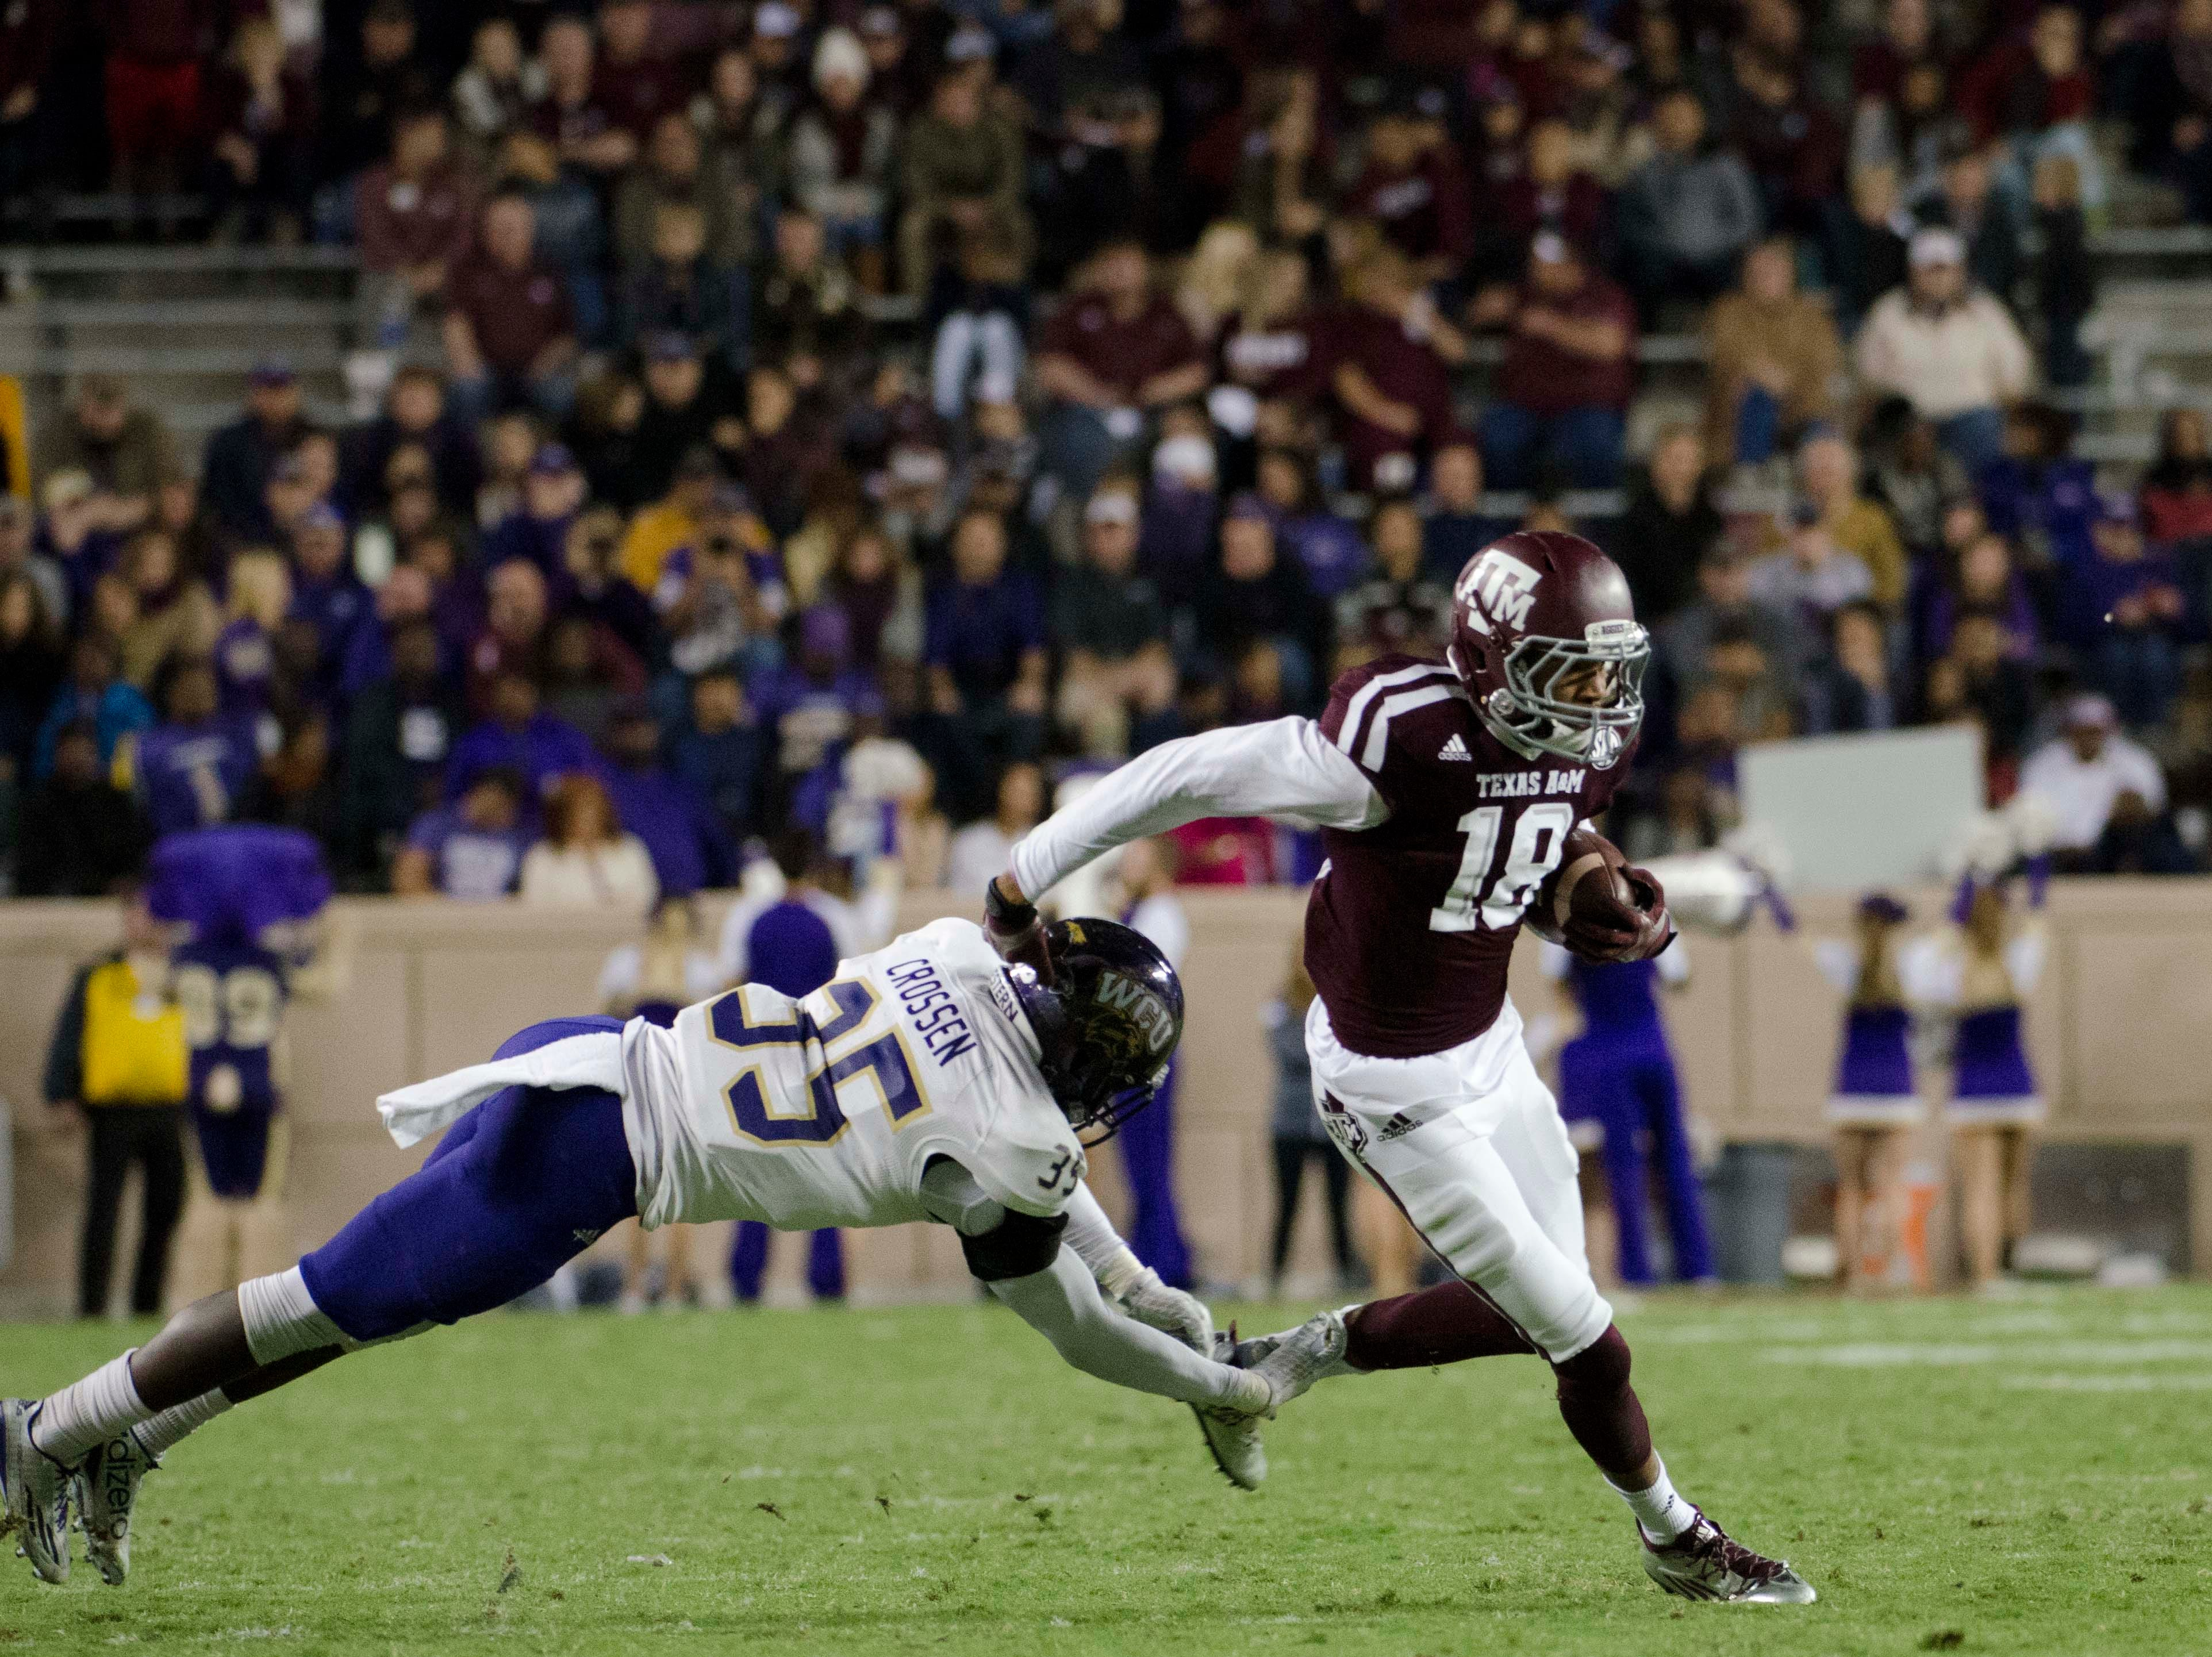 Nov 14, 2015; College Station, TX, USA; Texas A&M Aggies wide receiver Edward Pope (18) avoids a tackle by Western Carolina Catamounts cornerback Keion Crossen (35) during the second half at Kyle Field. Texas A&M beat Western Carolina 41-17. Mandatory Credit: Brendan Maloney-USA TODAY Sports